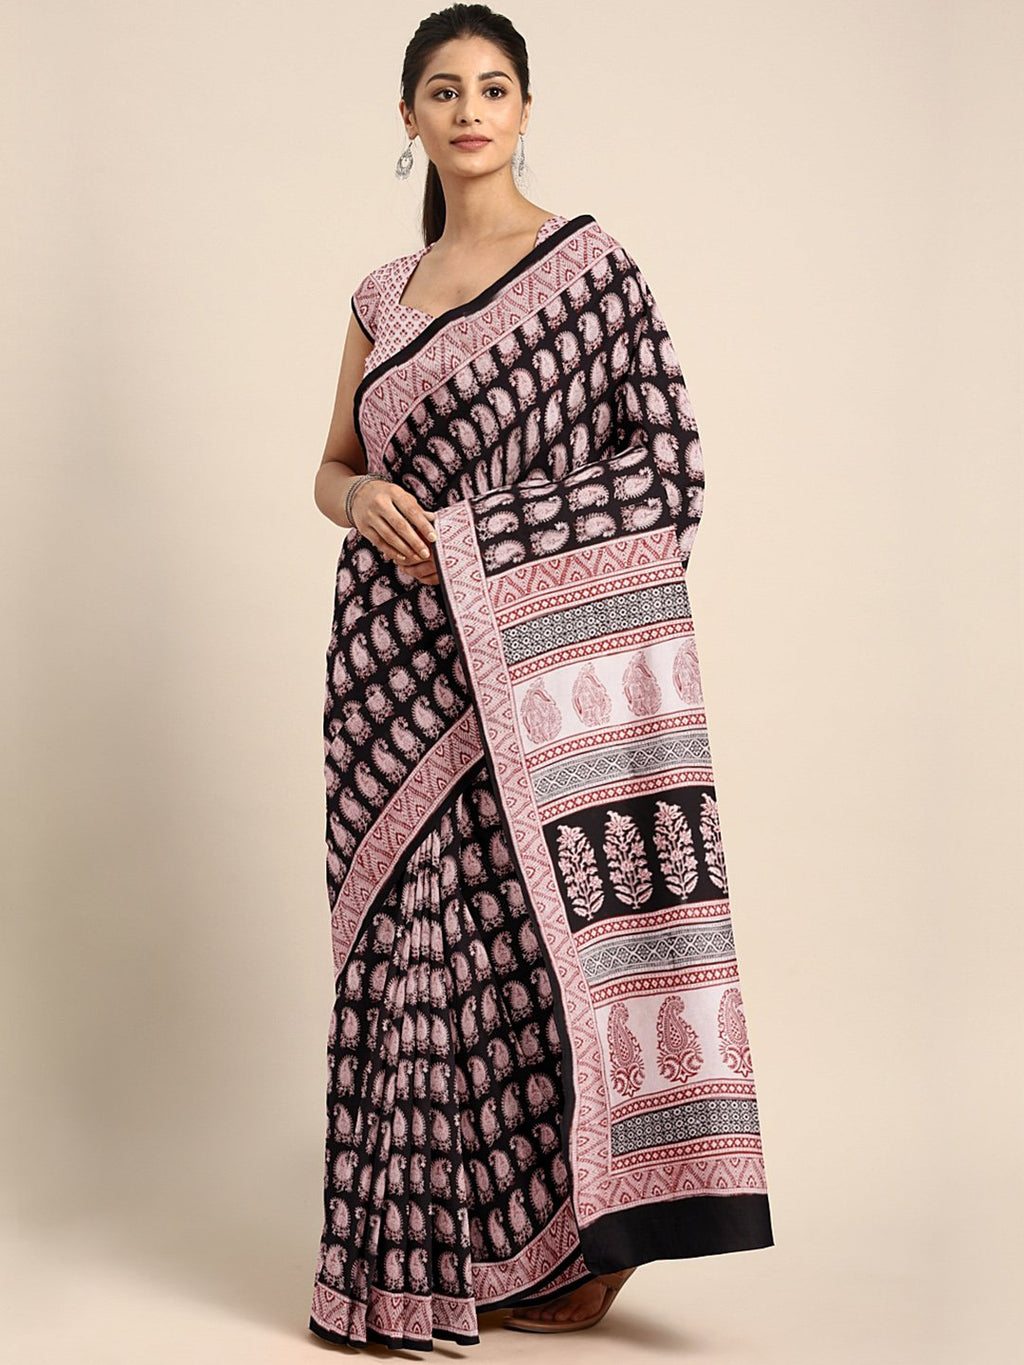 Black Beige Pure Cotton Printed Saree-Saree-Kalakari India-MYBASA0020-Bagh, Cotton, Geographical Indication, Hand Blocks, Hand Crafted, Heritage Prints, Natural Dyes, Sarees, Sustainable Fabrics-[Linen,Ethnic,wear,Fashionista,Handloom,Handicraft,Indigo,blockprint,block,print,Cotton,Chanderi,Blue, latest,classy,party,bollywood,trendy,summer,style,traditional,formal,elegant,unique,style,hand,block,print, dabu,booti,gift,present,glamorous,affordable,collectible,Sari,Saree,printed, holi, Diwali, bir